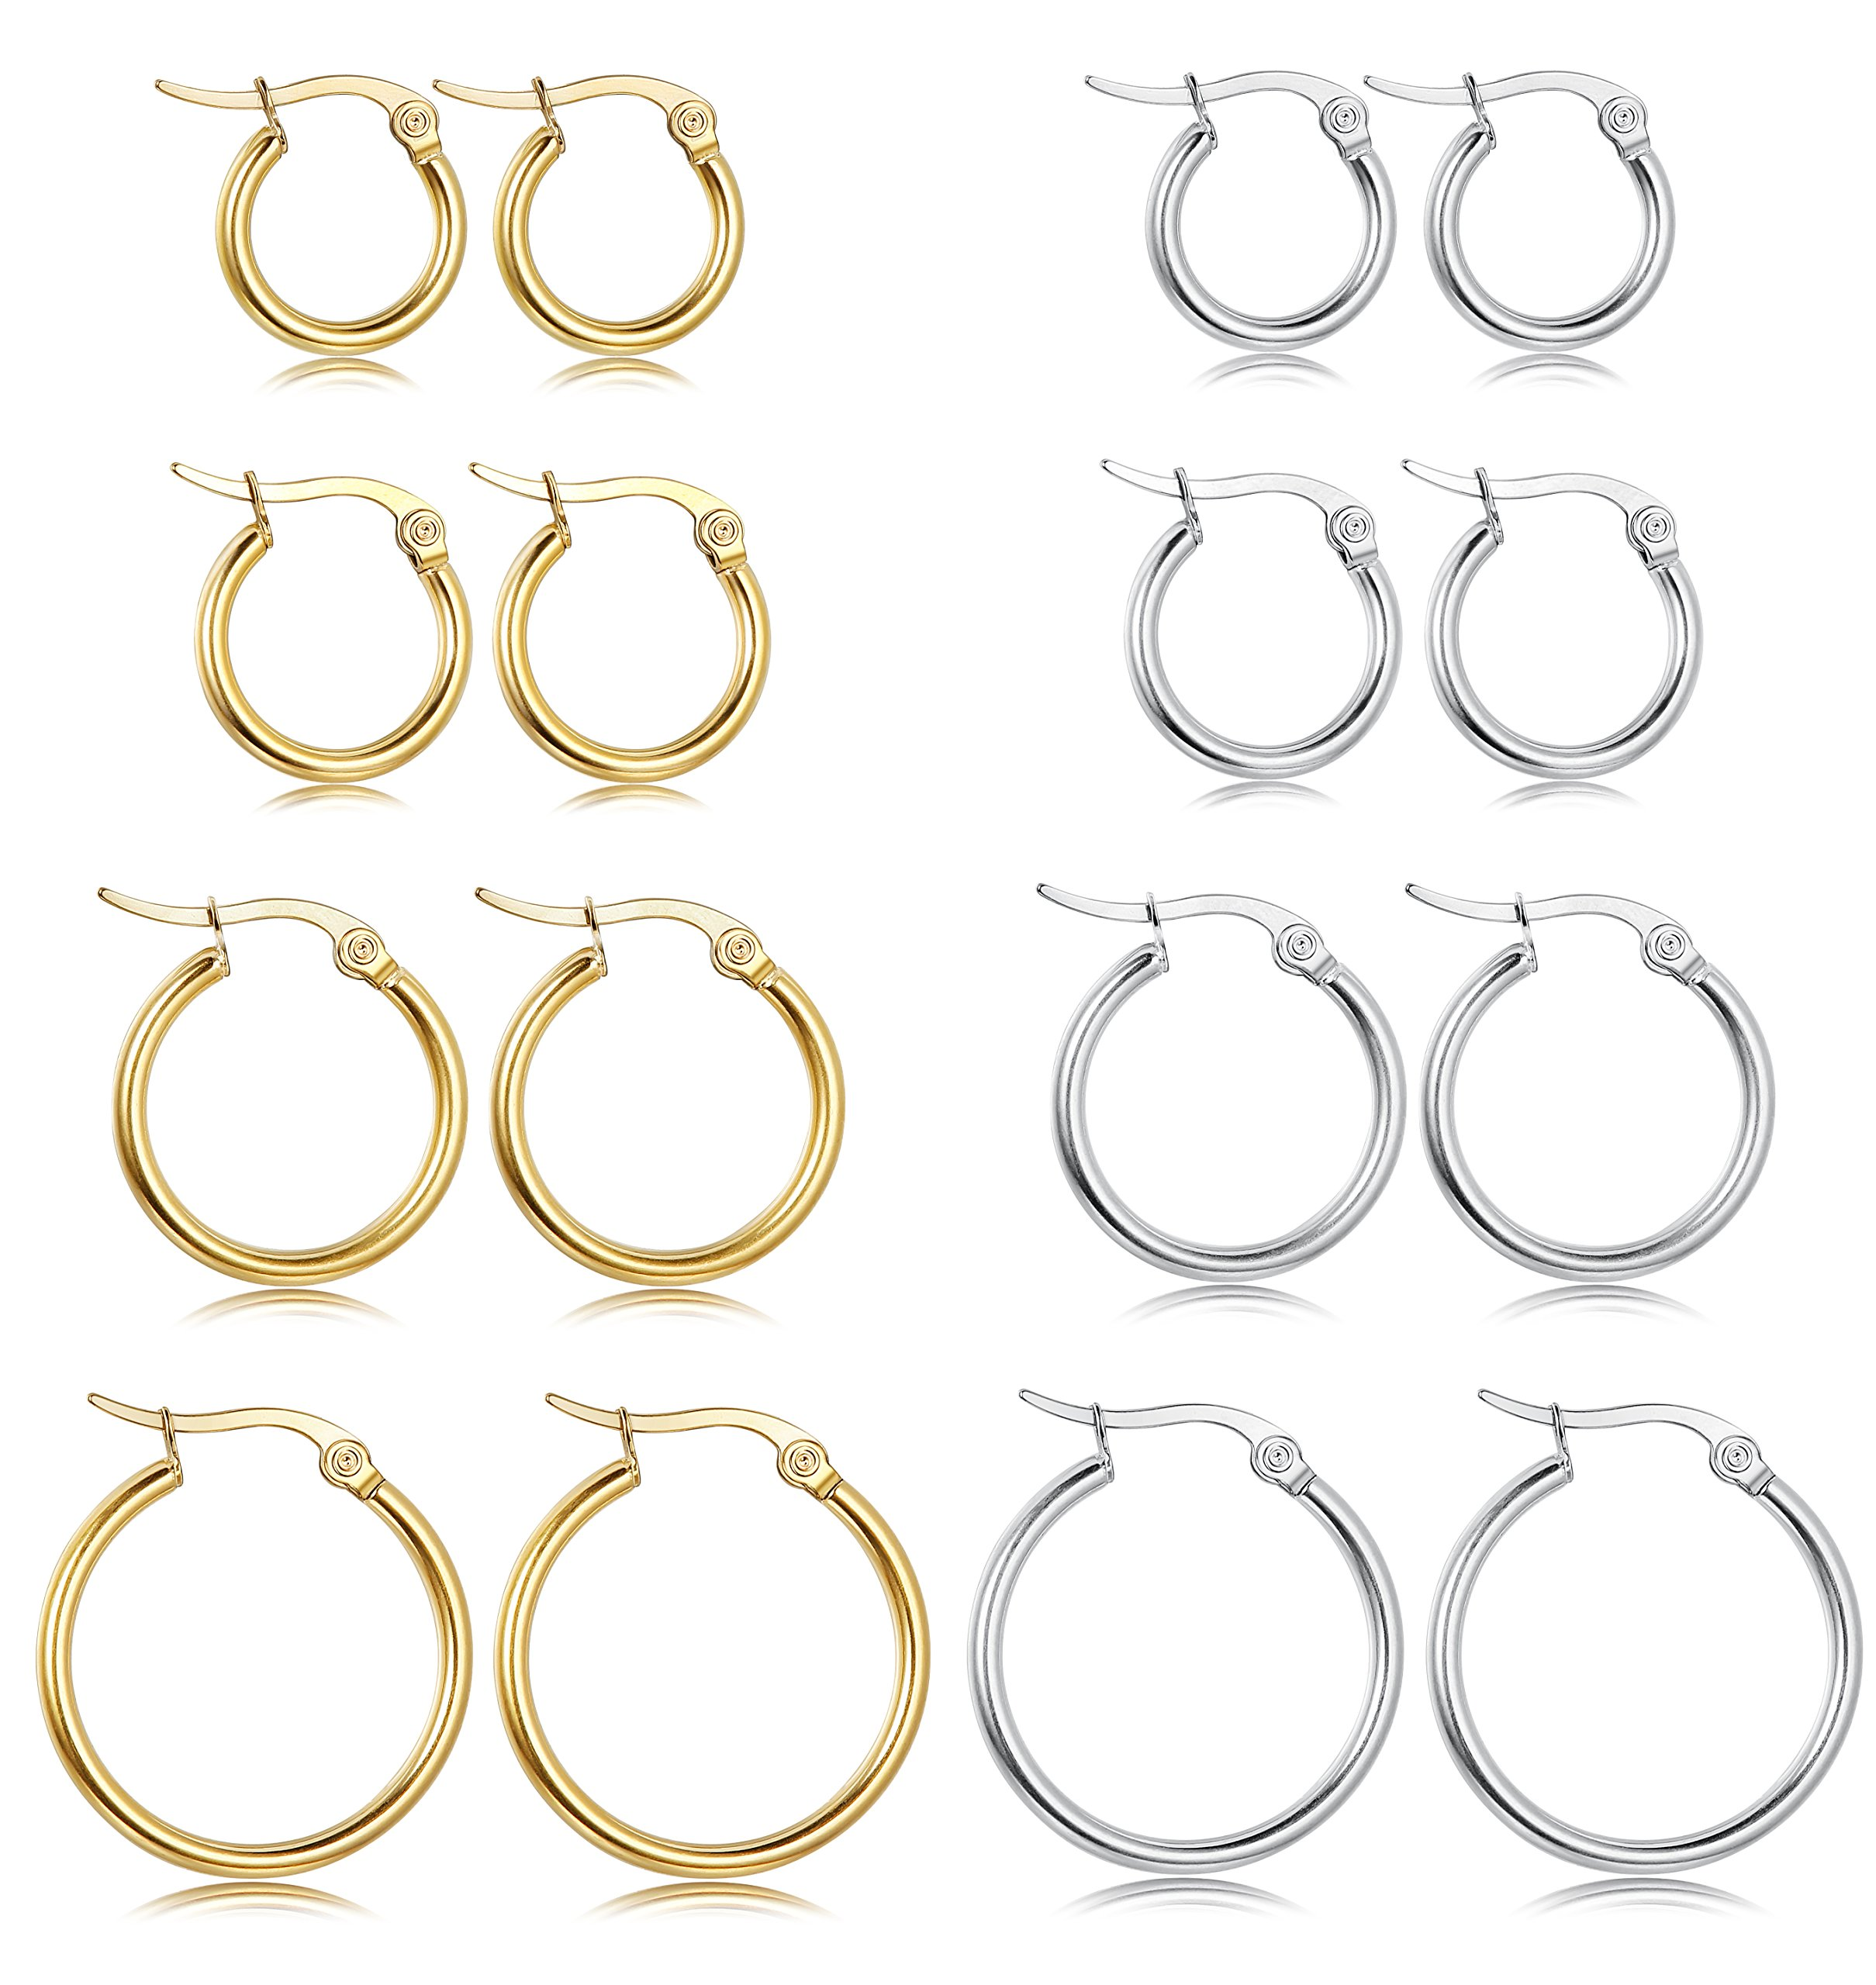 LOYALLOOK Stainless Steel Rounded Small Hoop Earrings Set for Women Nickel Free 8 Pairs White&Gold by LOYALLOOK